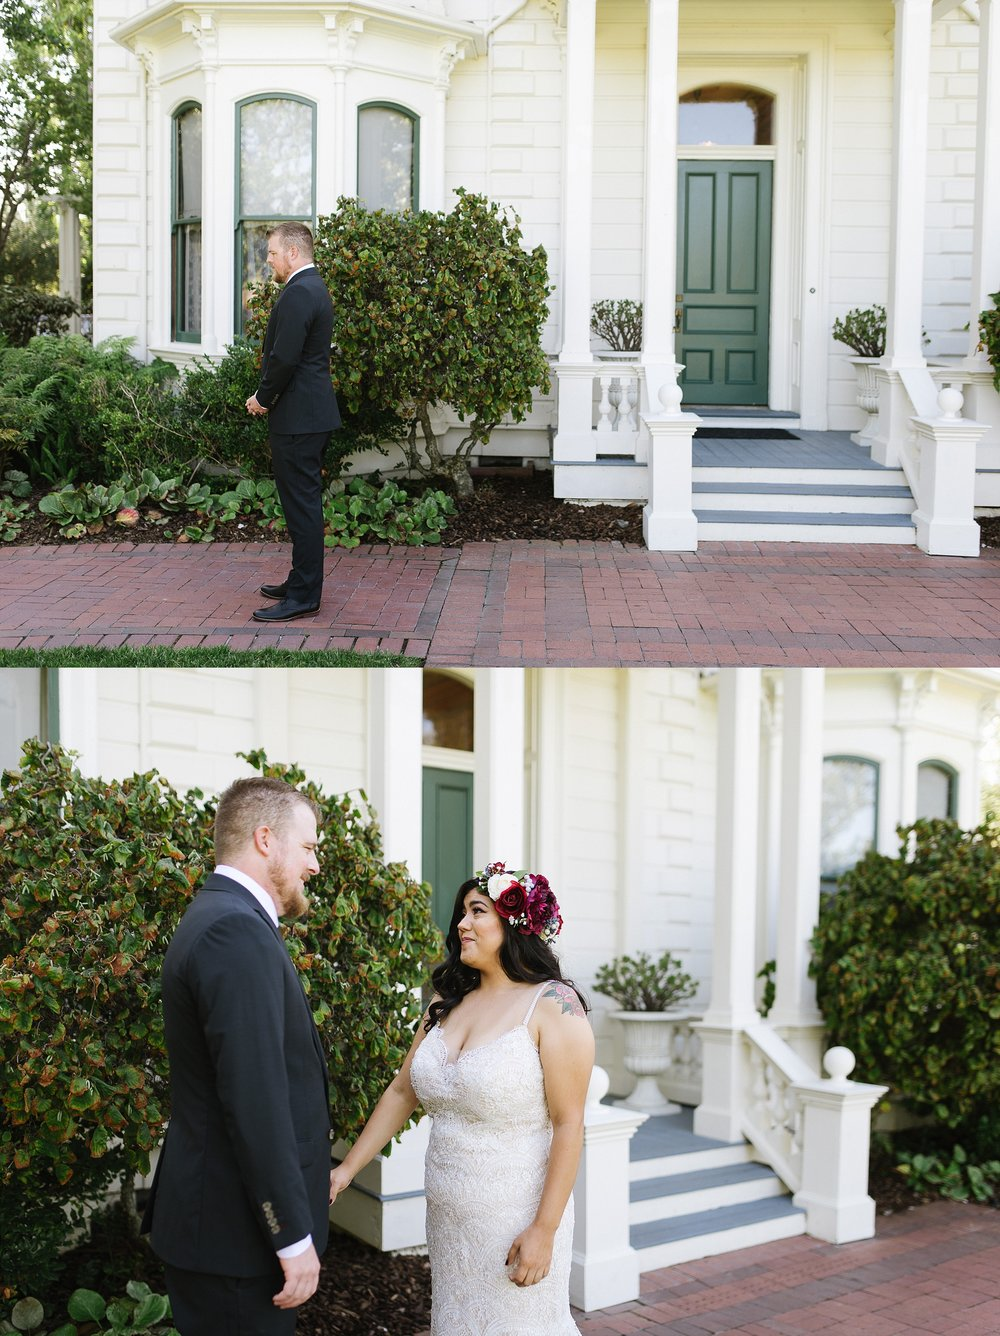 enissablake_Rengstorff_house_outdoor_wedding_cdp_0007.jpg